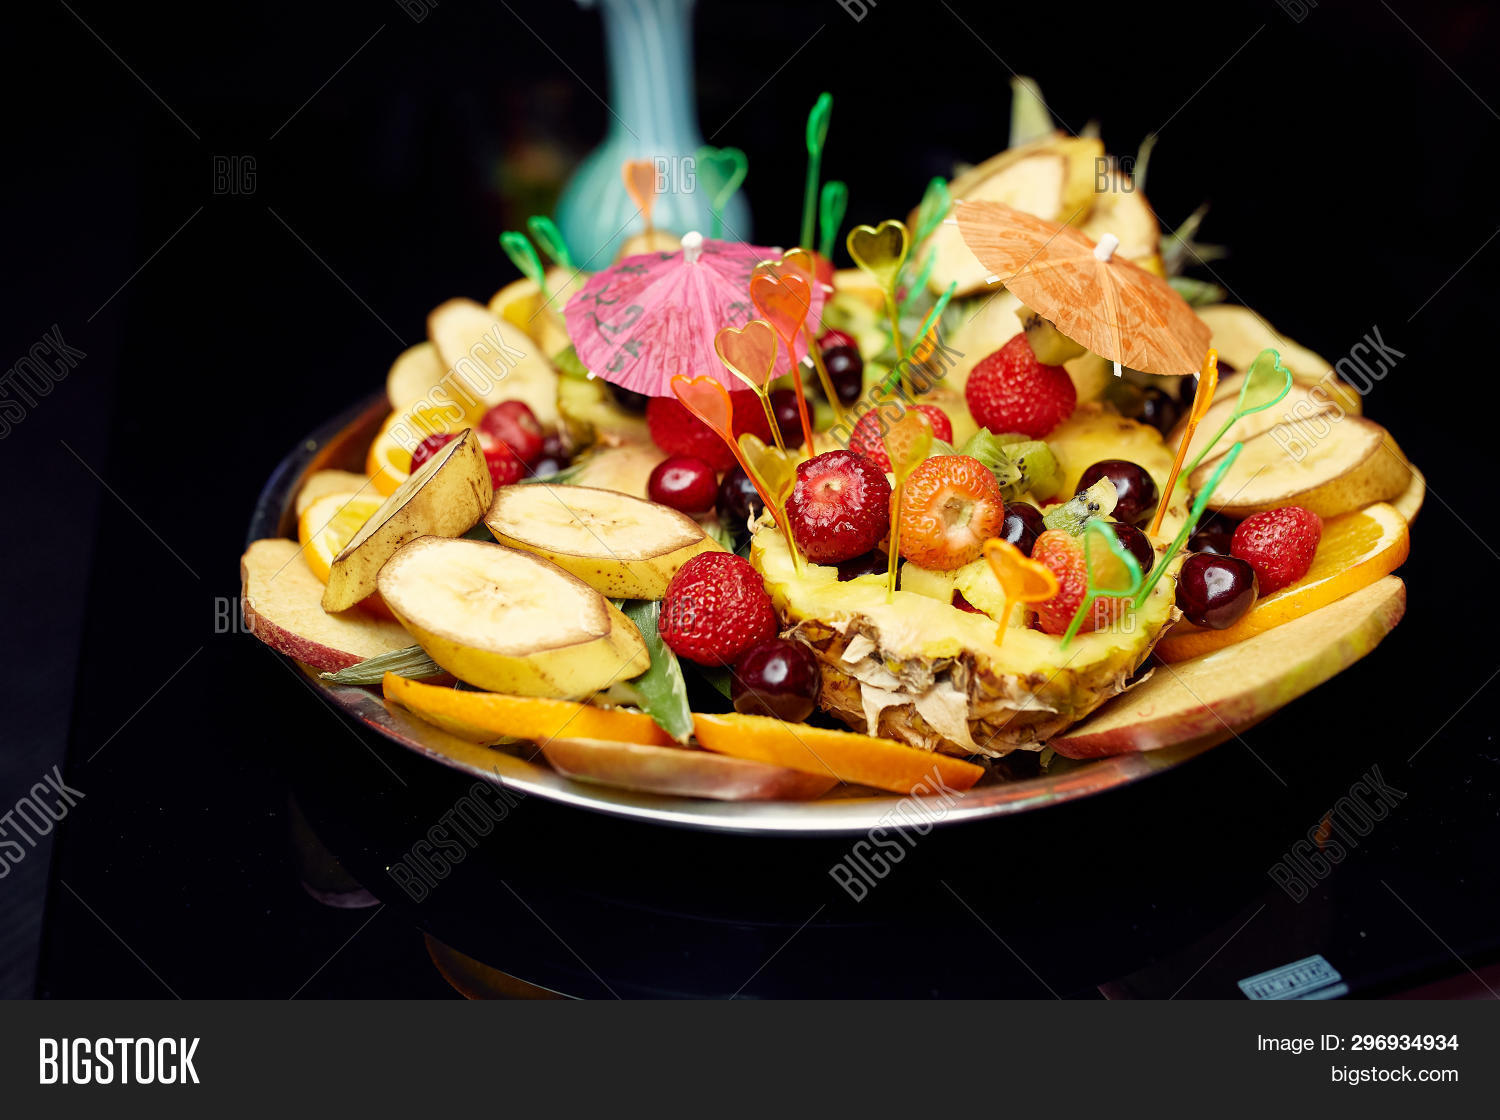 Great Photo Of Fruits In A White Plate On The Black Background